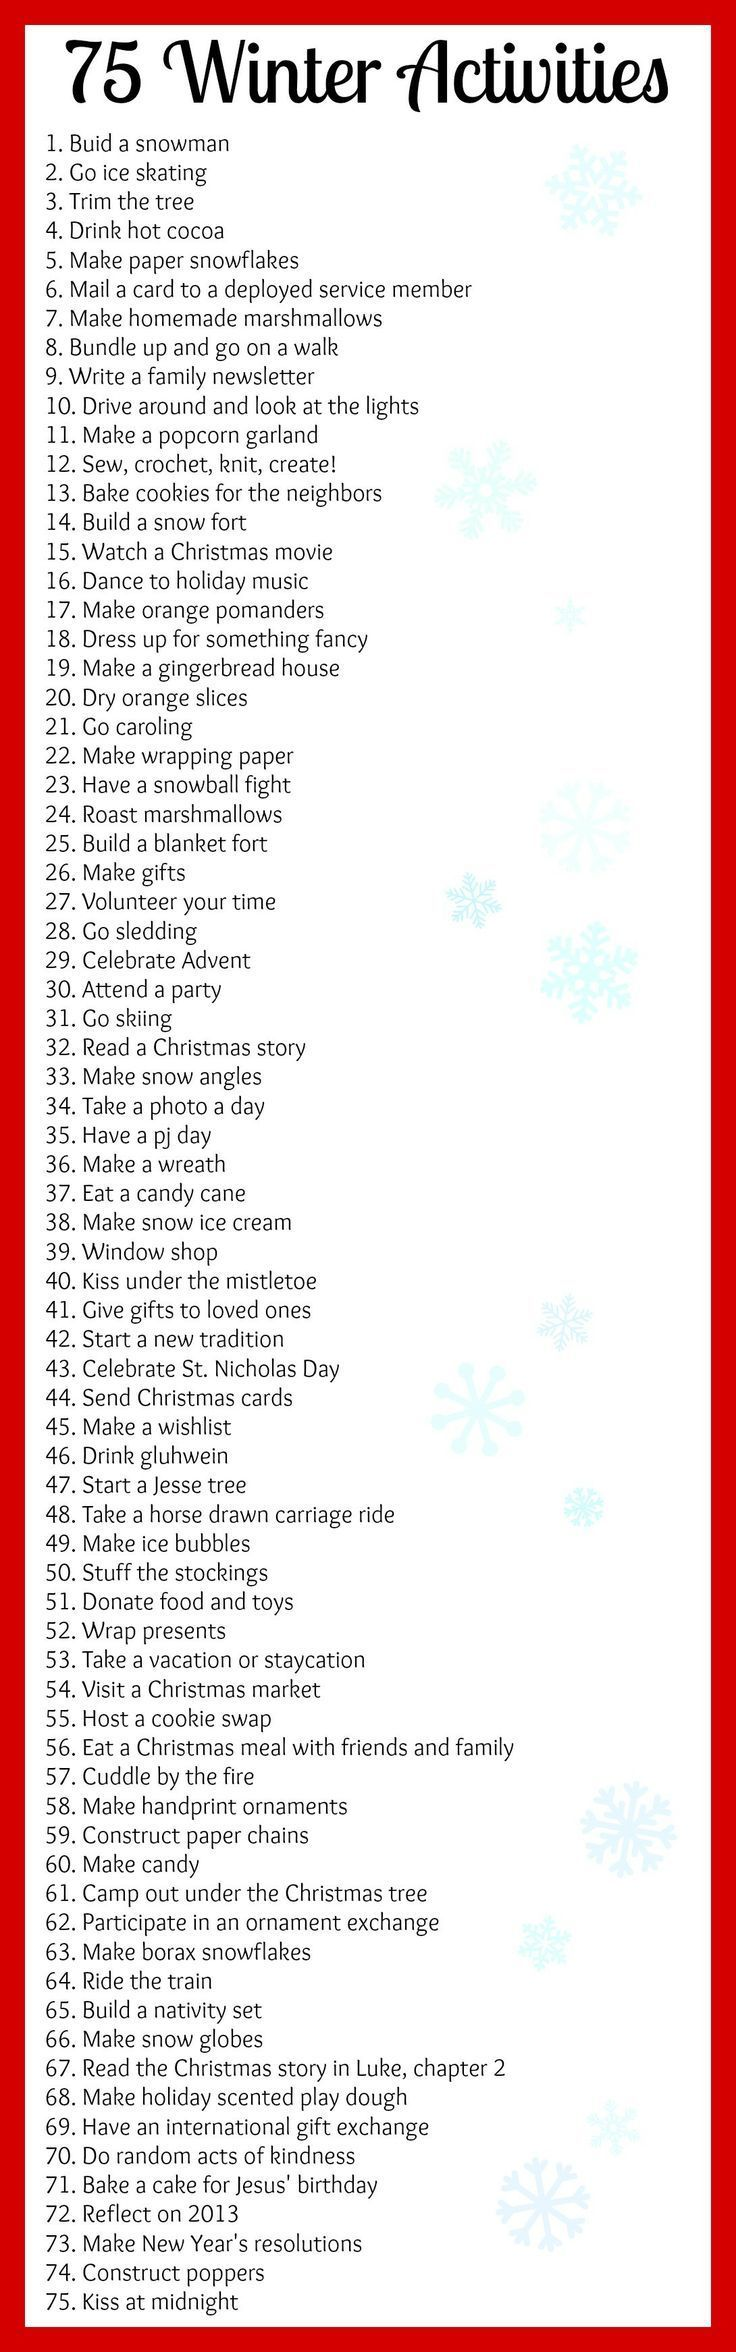 75 Winter Activities For The Bucket List Or To Fill An Advent